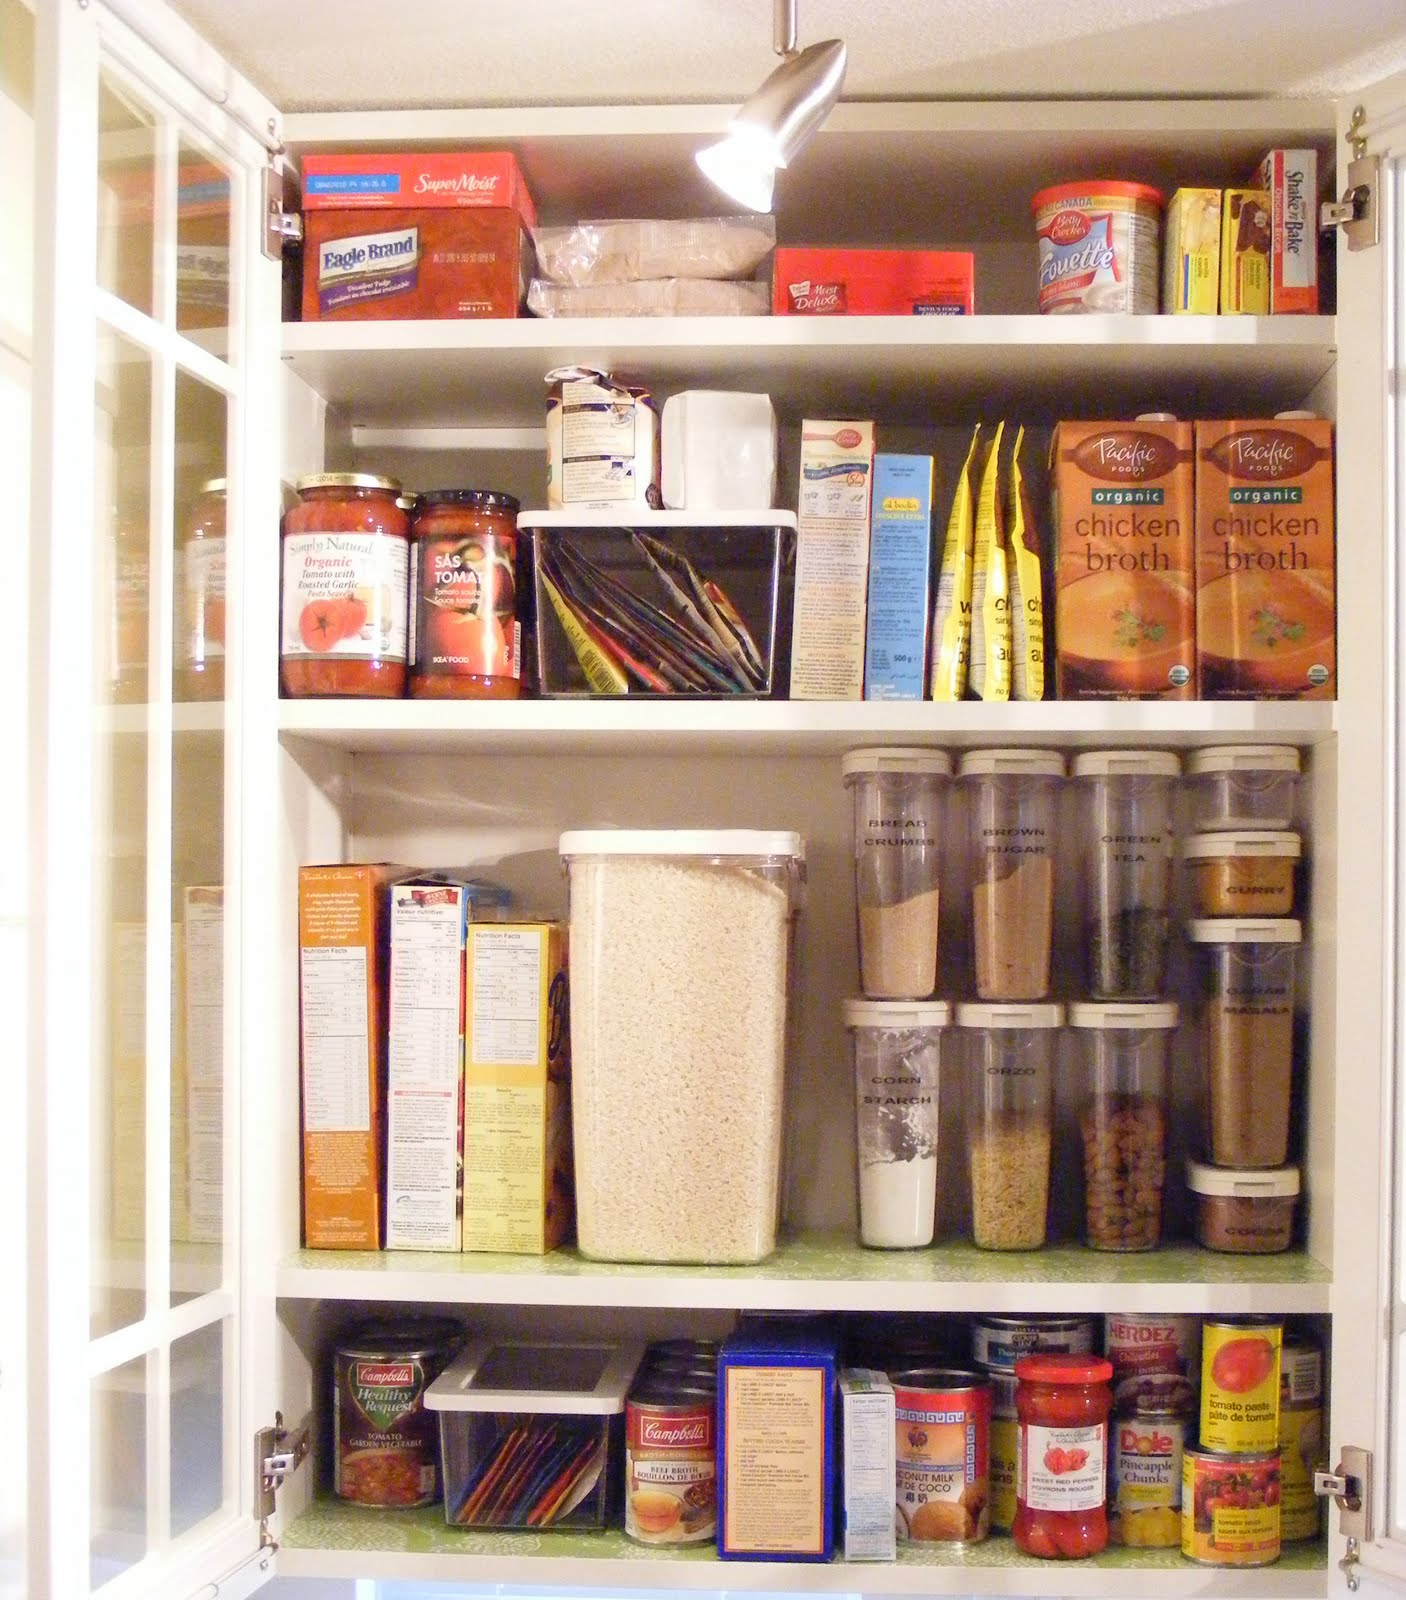 So Squared Away: 3 Steps To Conquer Pantry Mayhem